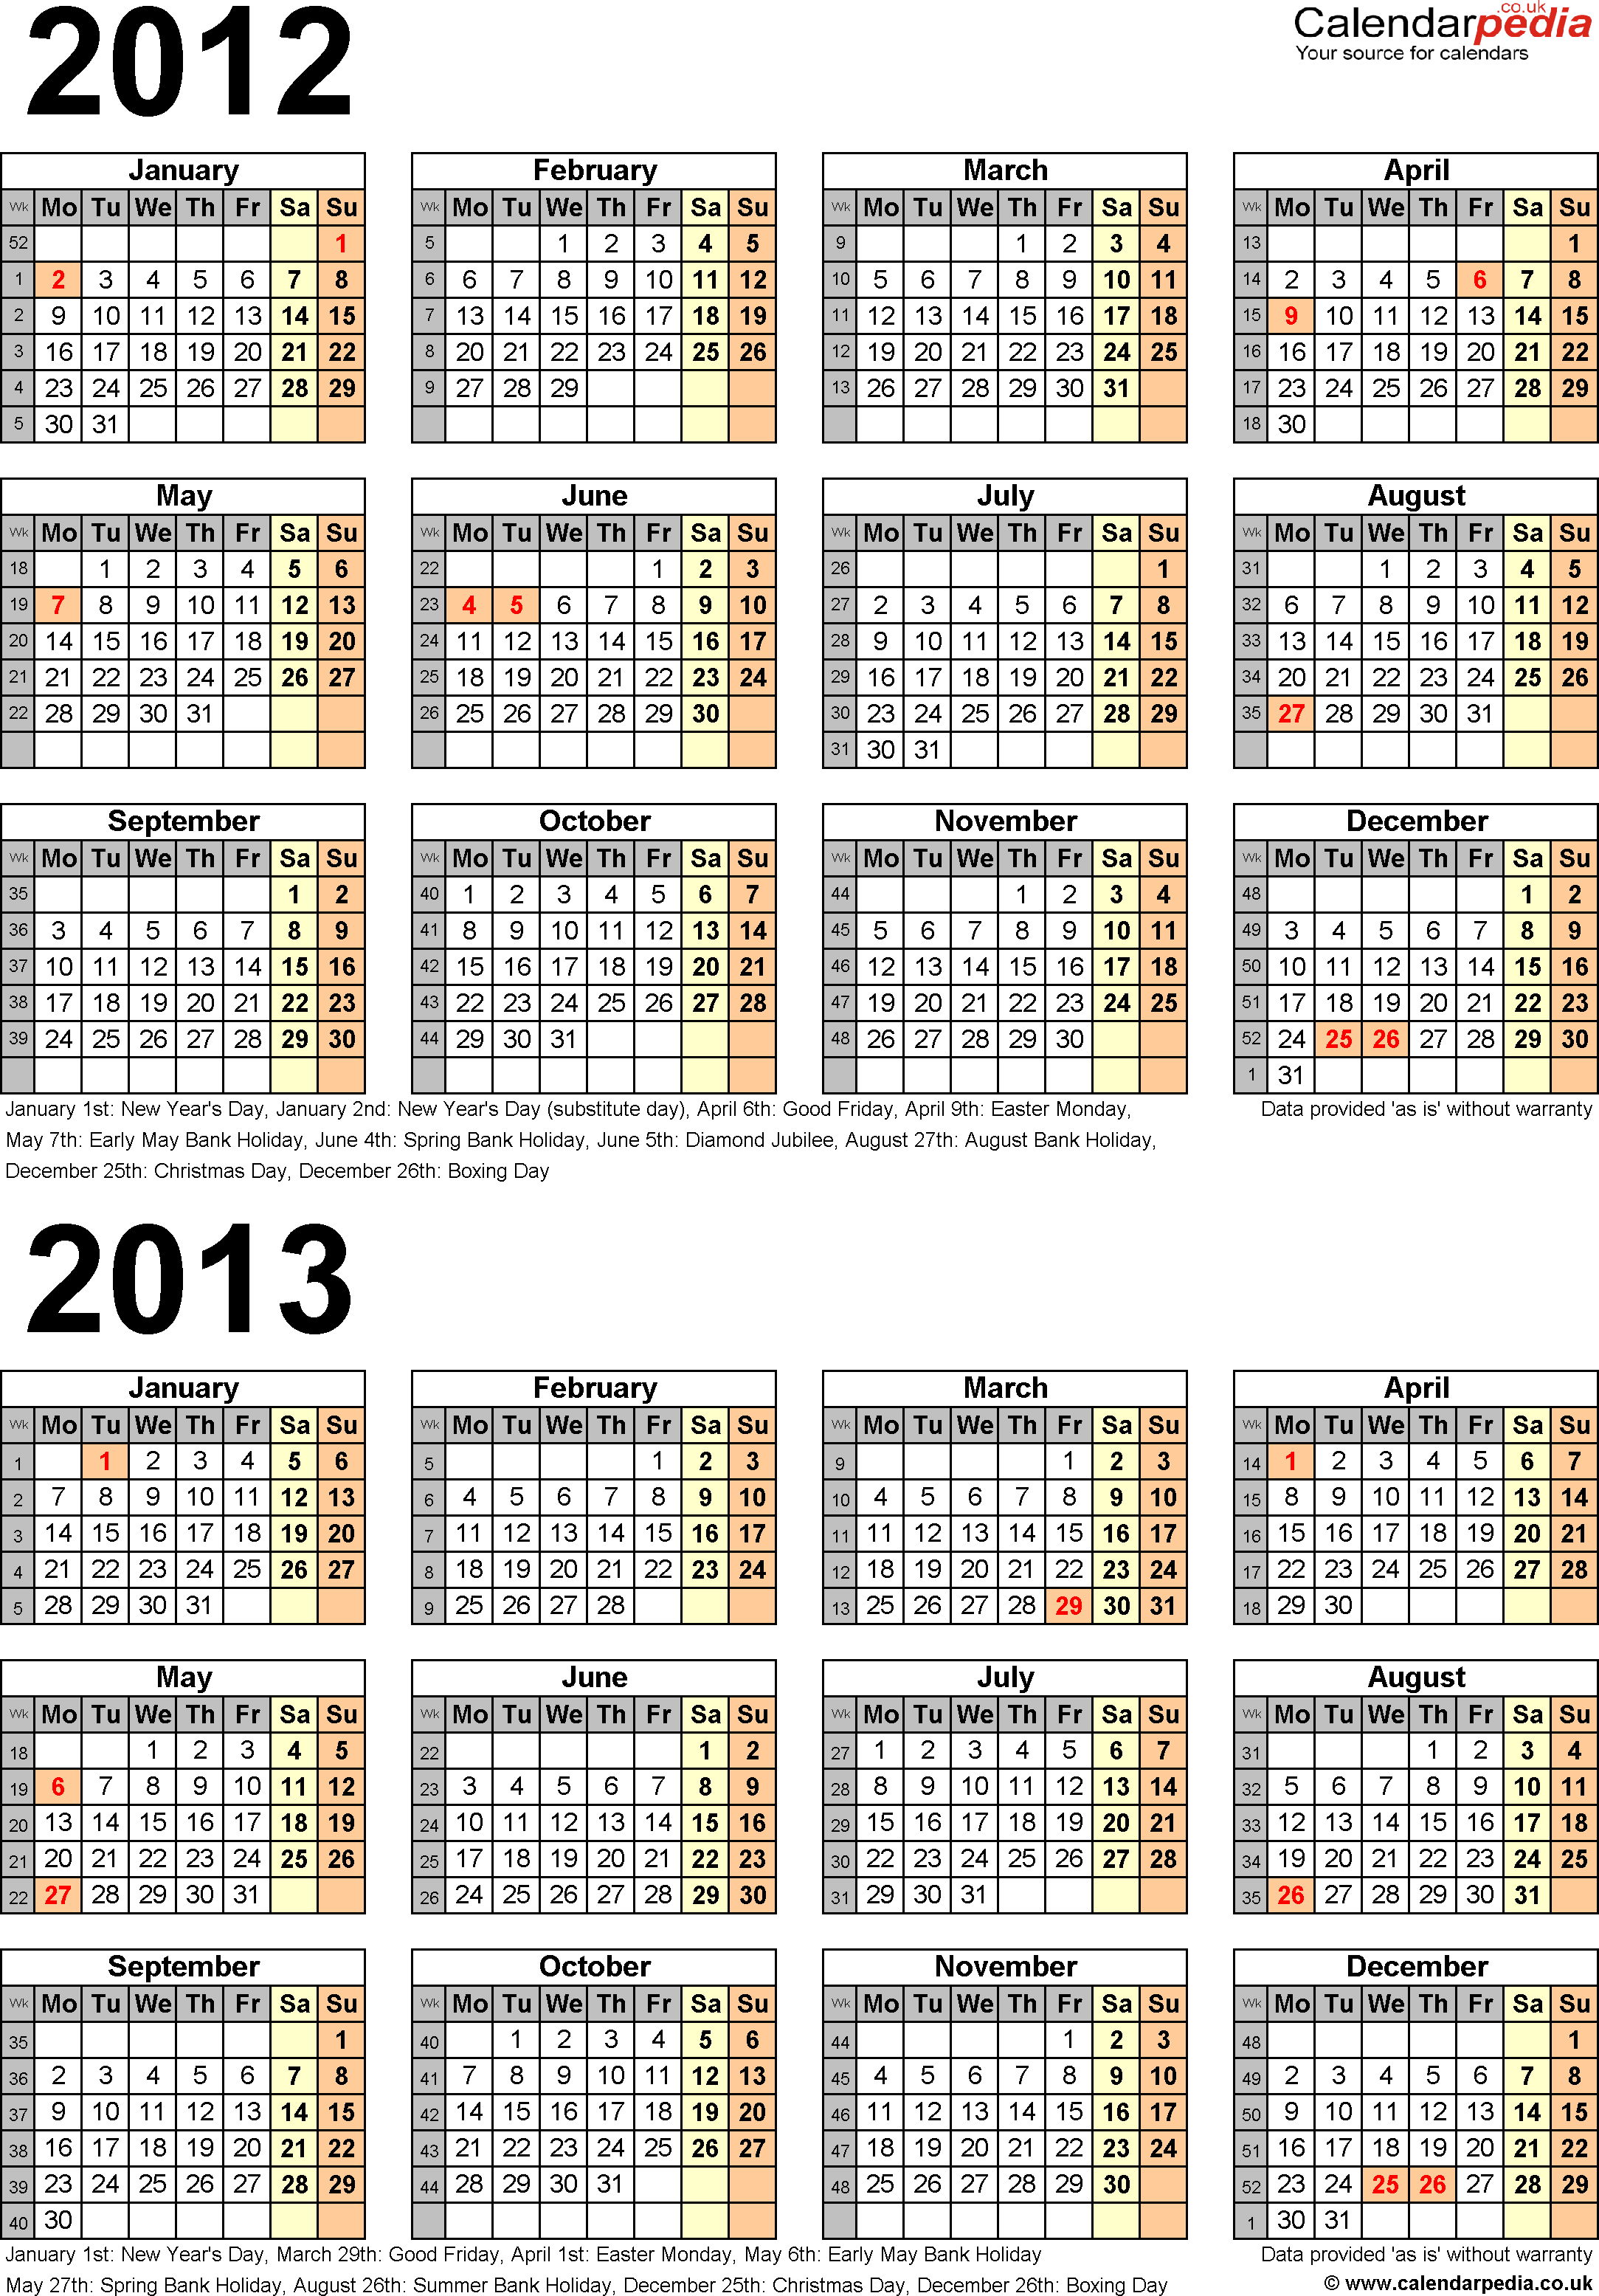 Download Template 4: Word template for two year calendar 2012/2013 (portrait orientation, 1 page, A4)